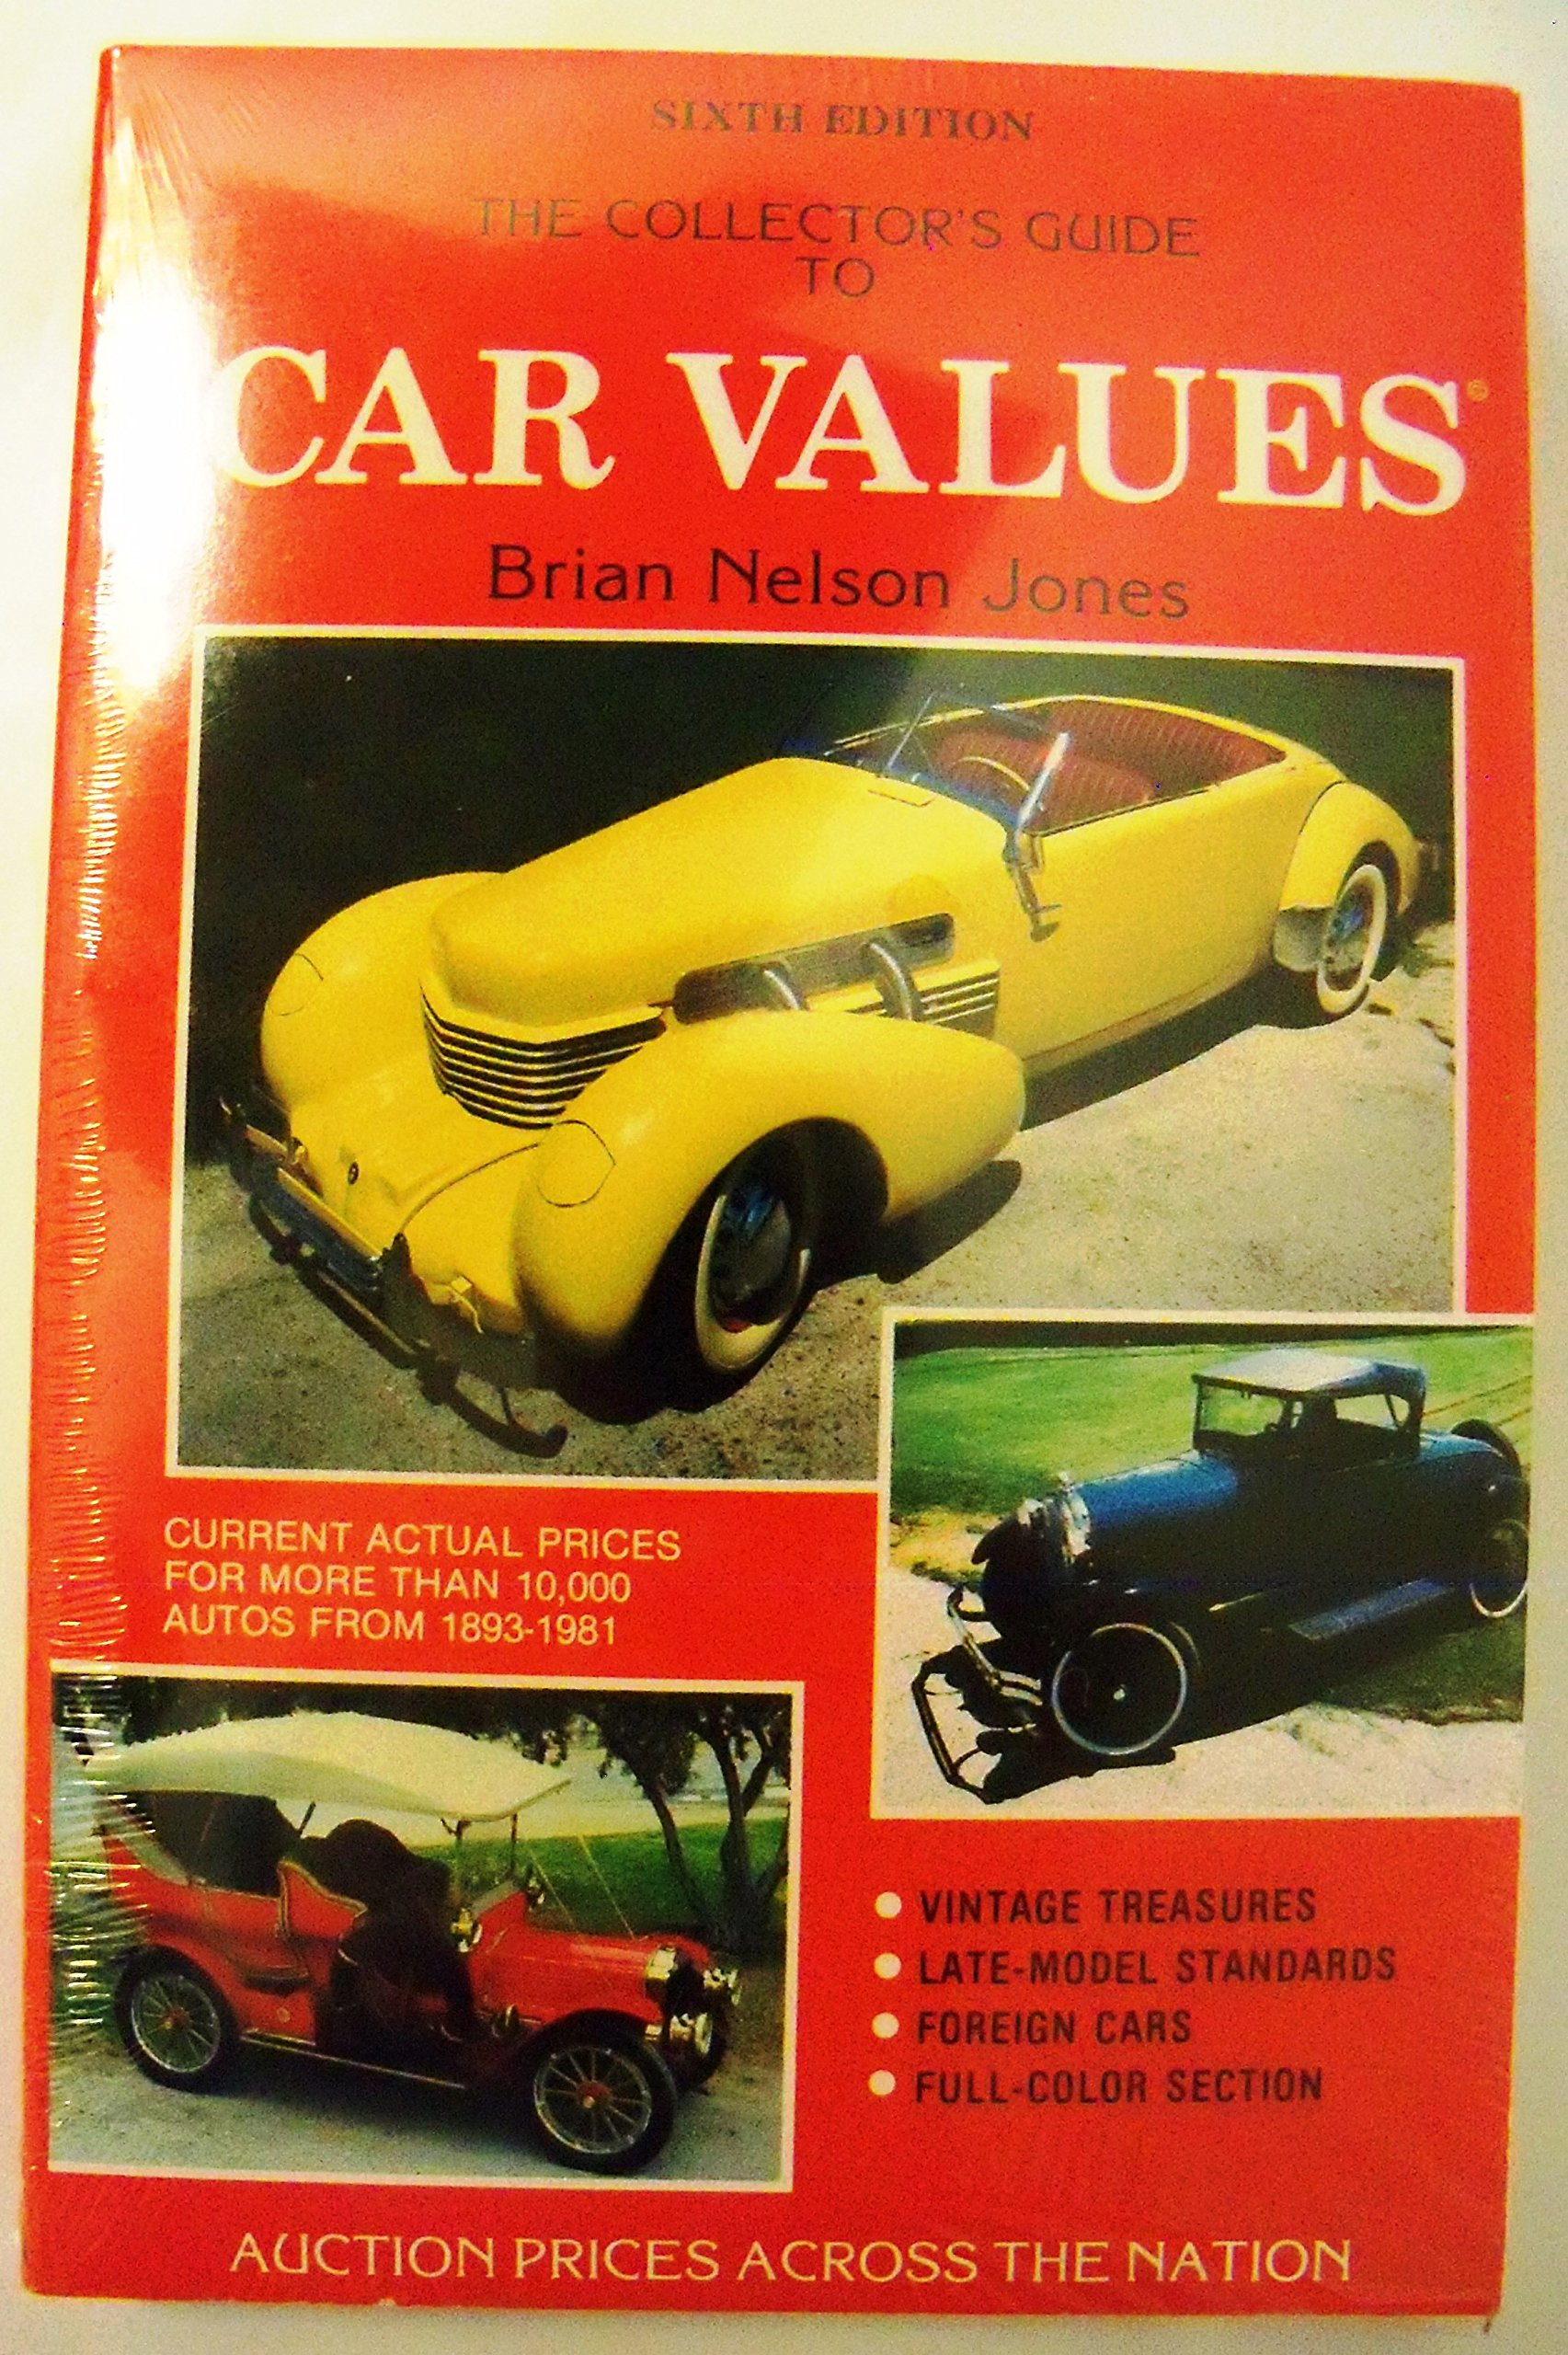 The collectors guide to car values: Auction prices across the nation ...